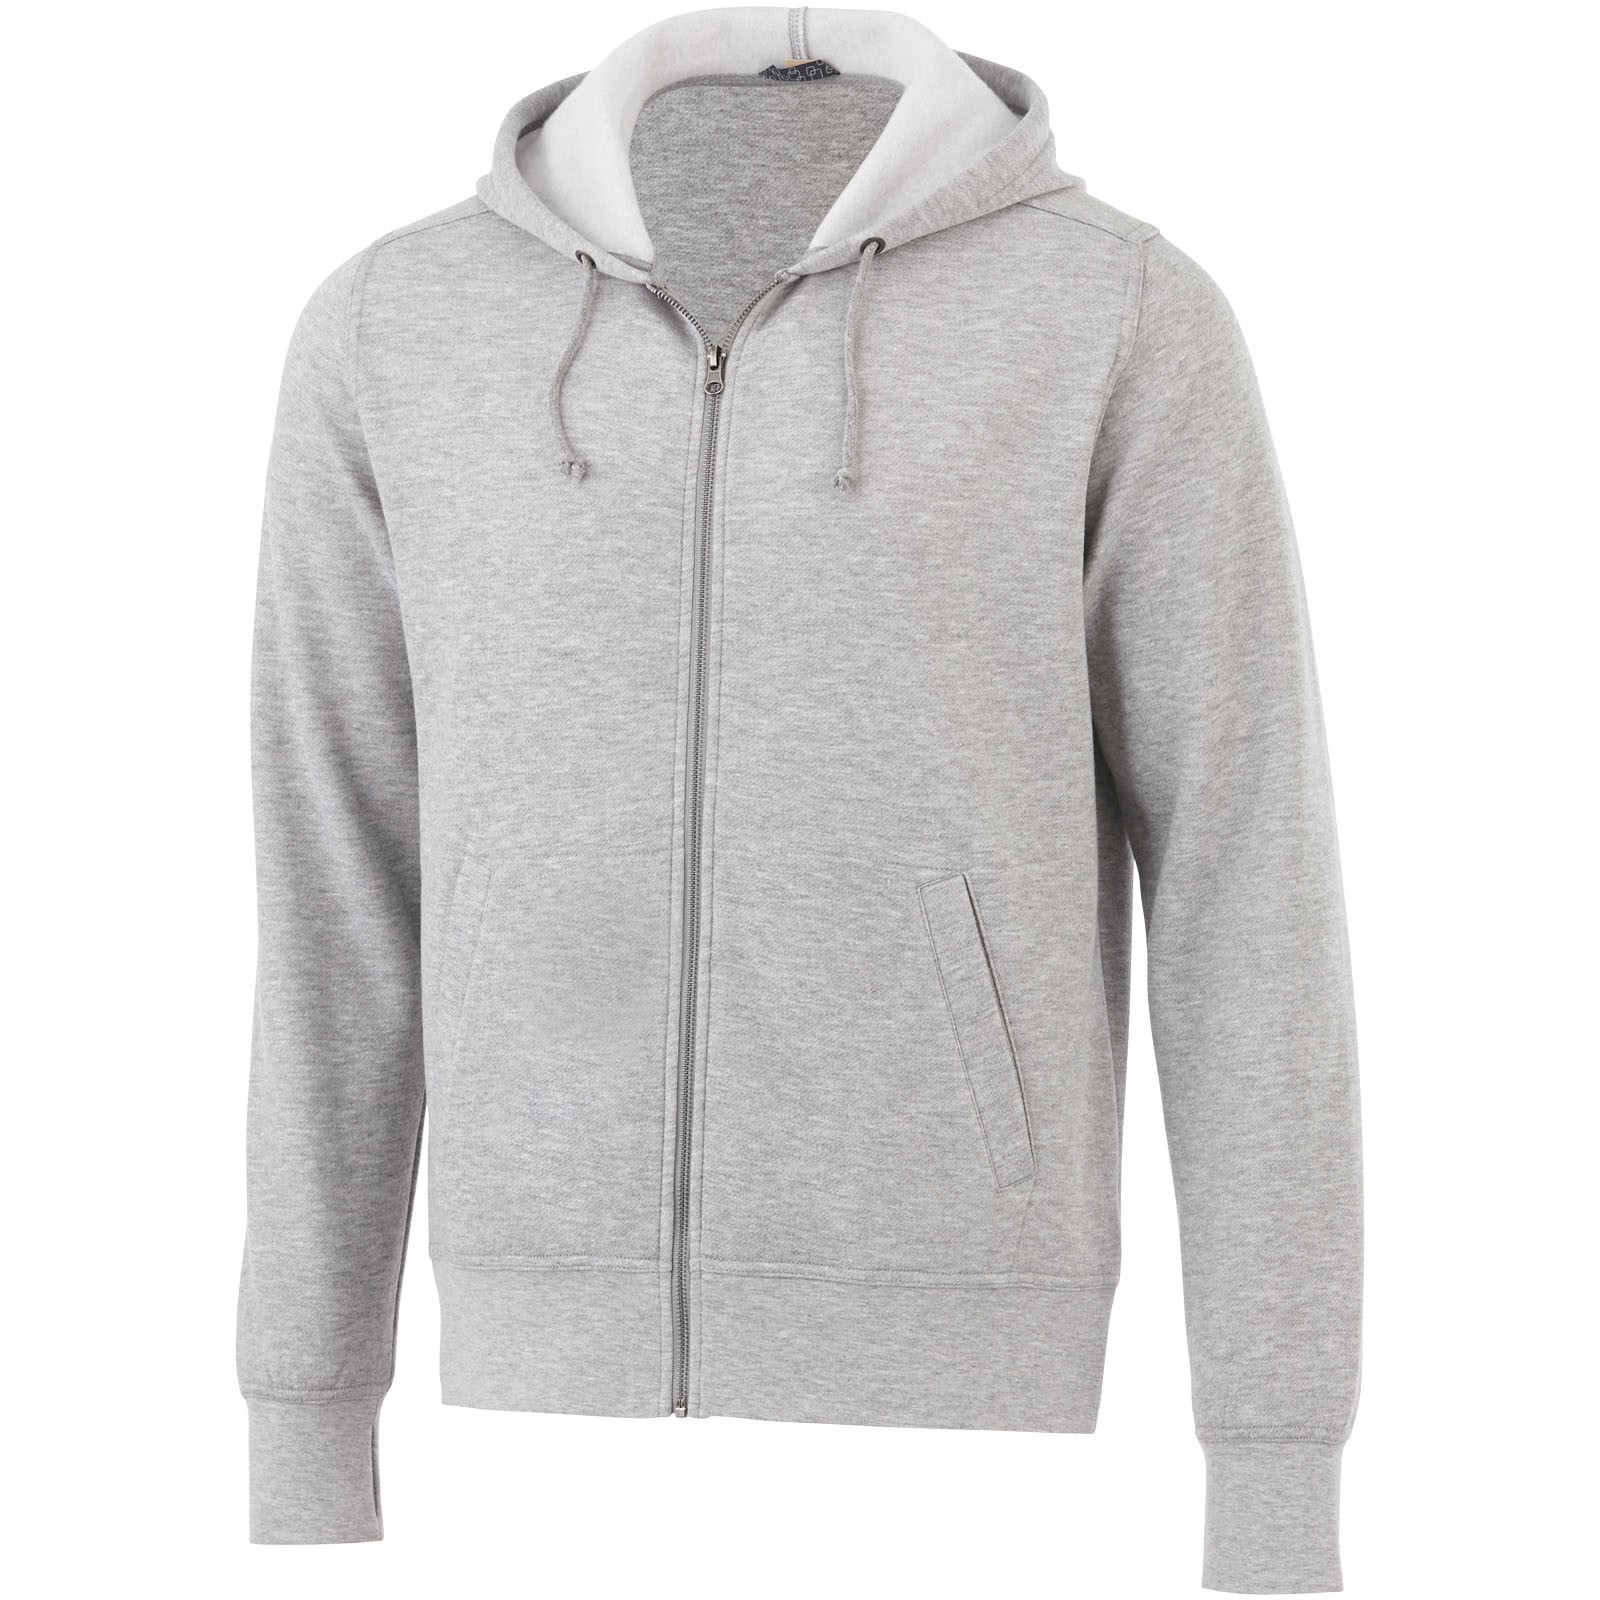 Unisex mikina na zip s kapucí Cypress - Heather Grey / XS